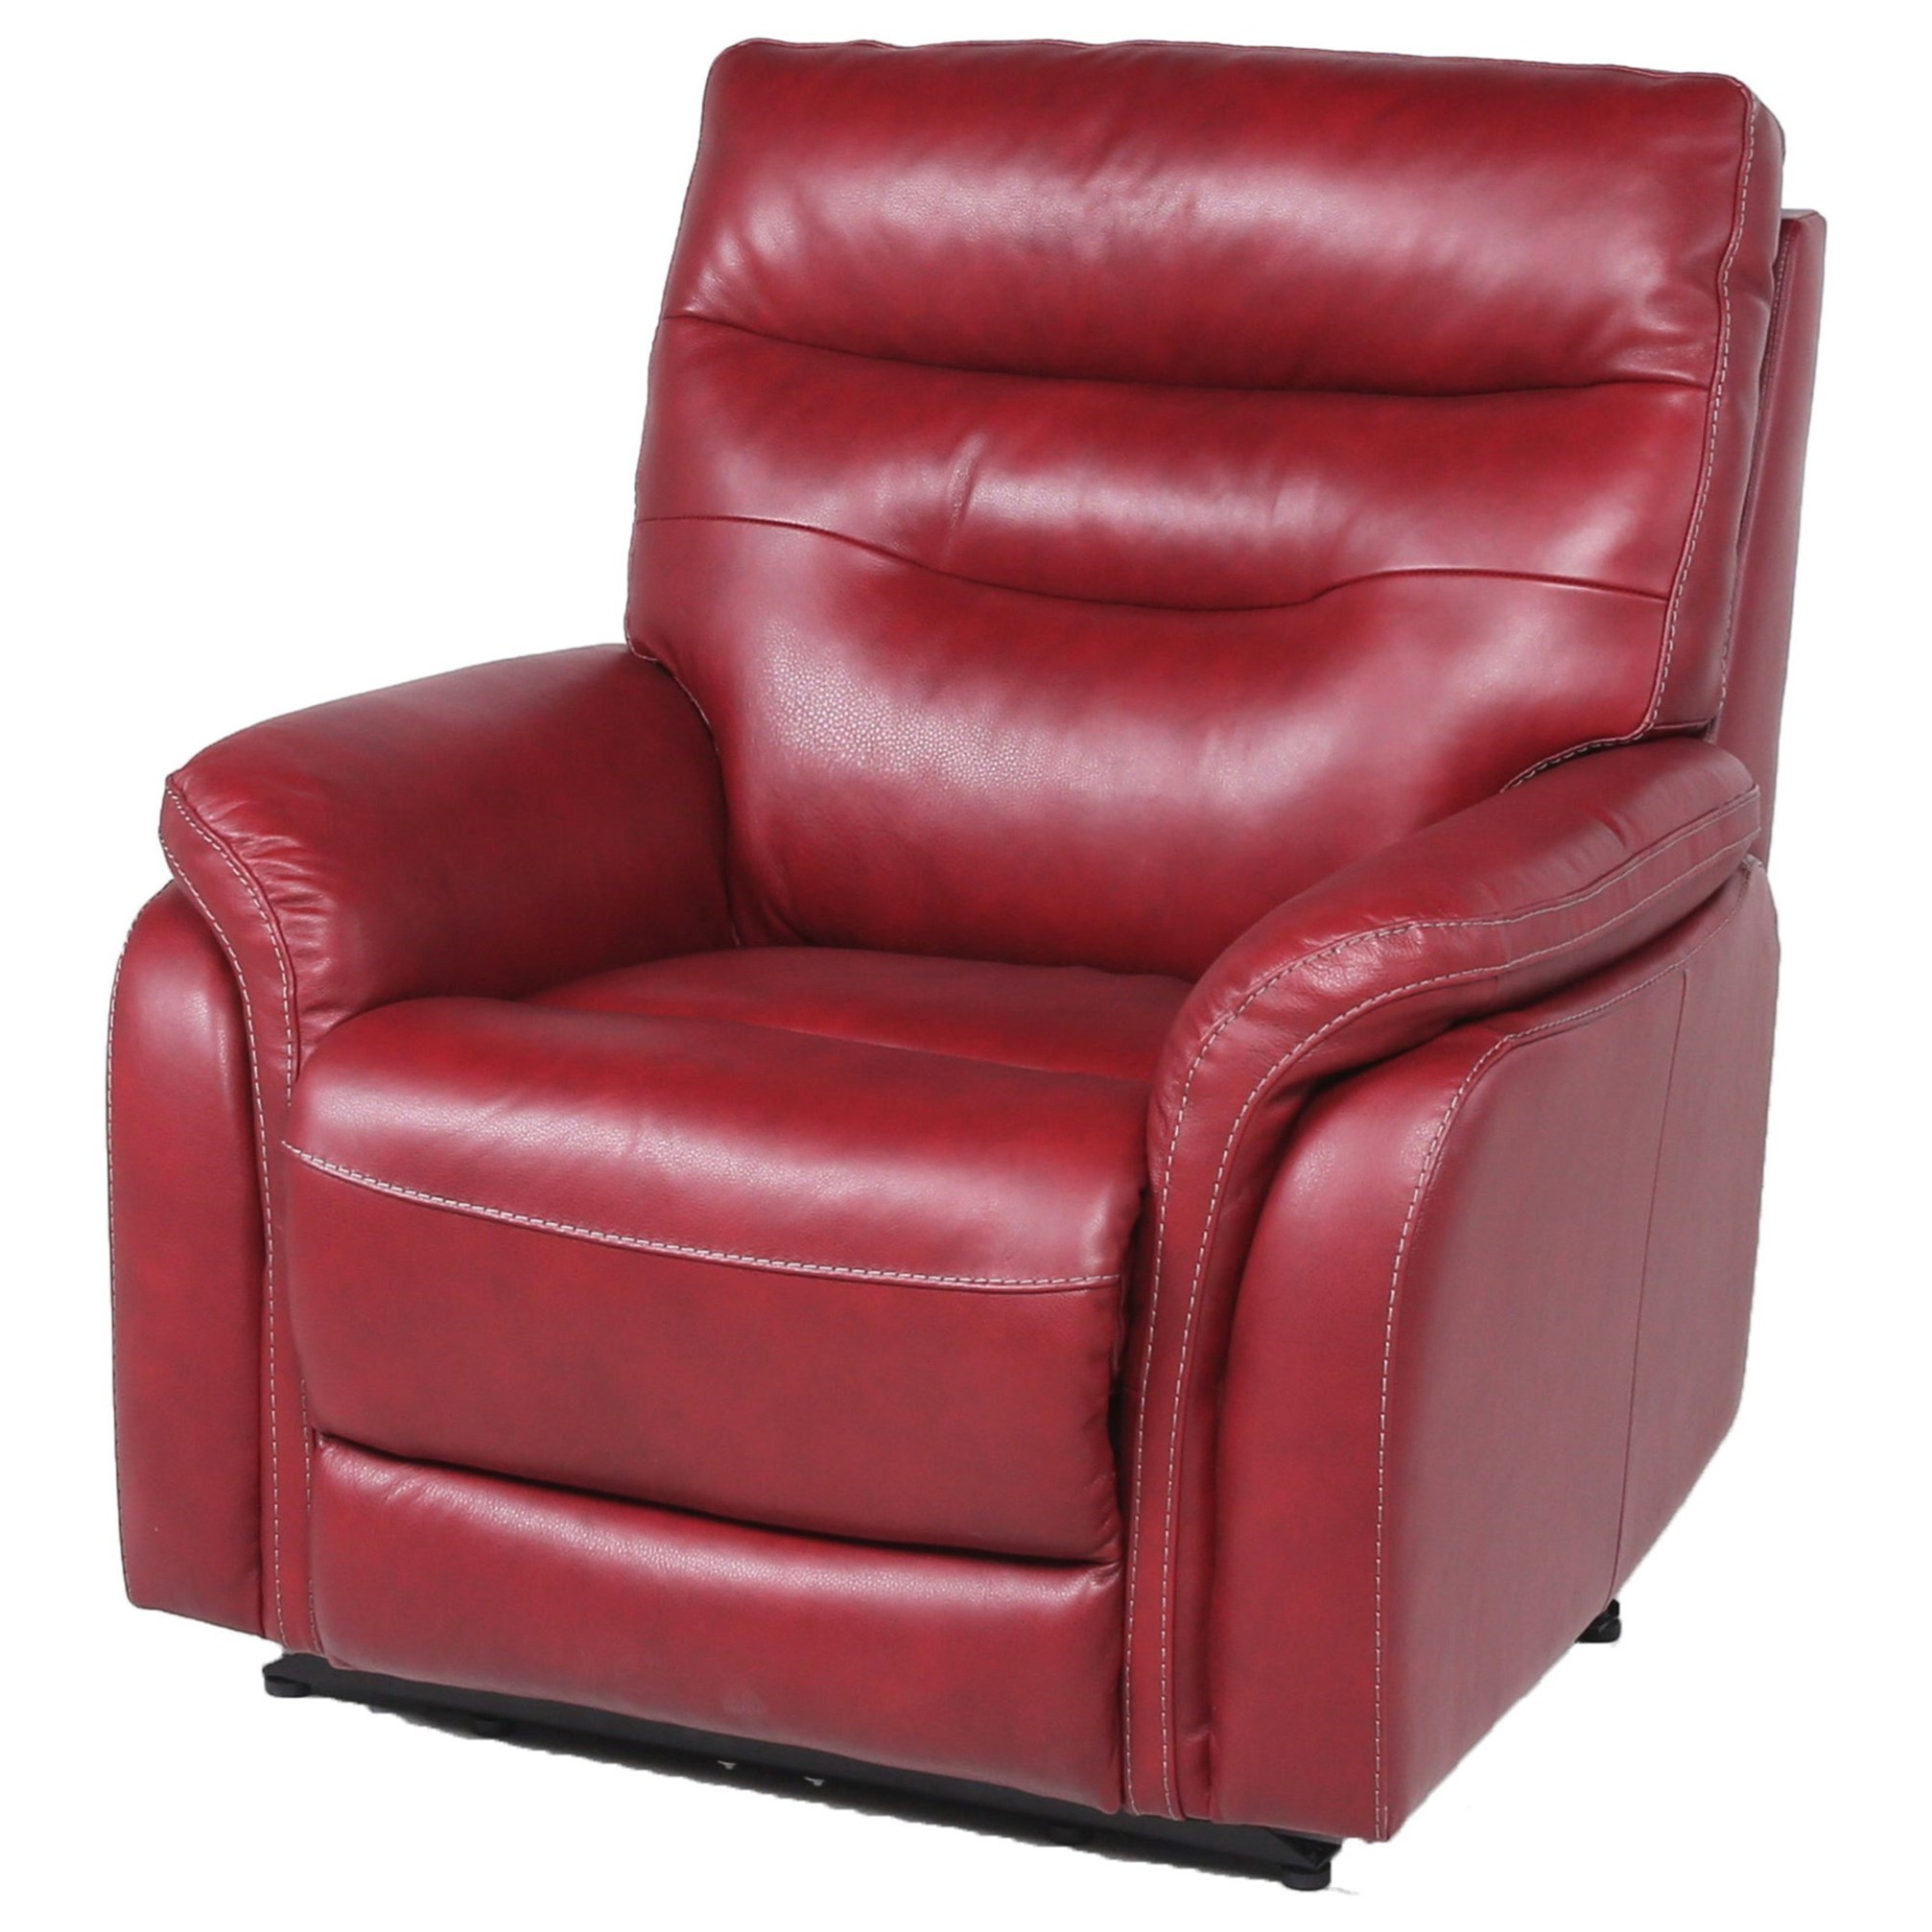 Fortuna Power Recliner by Steve Silver at Northeast Factory Direct